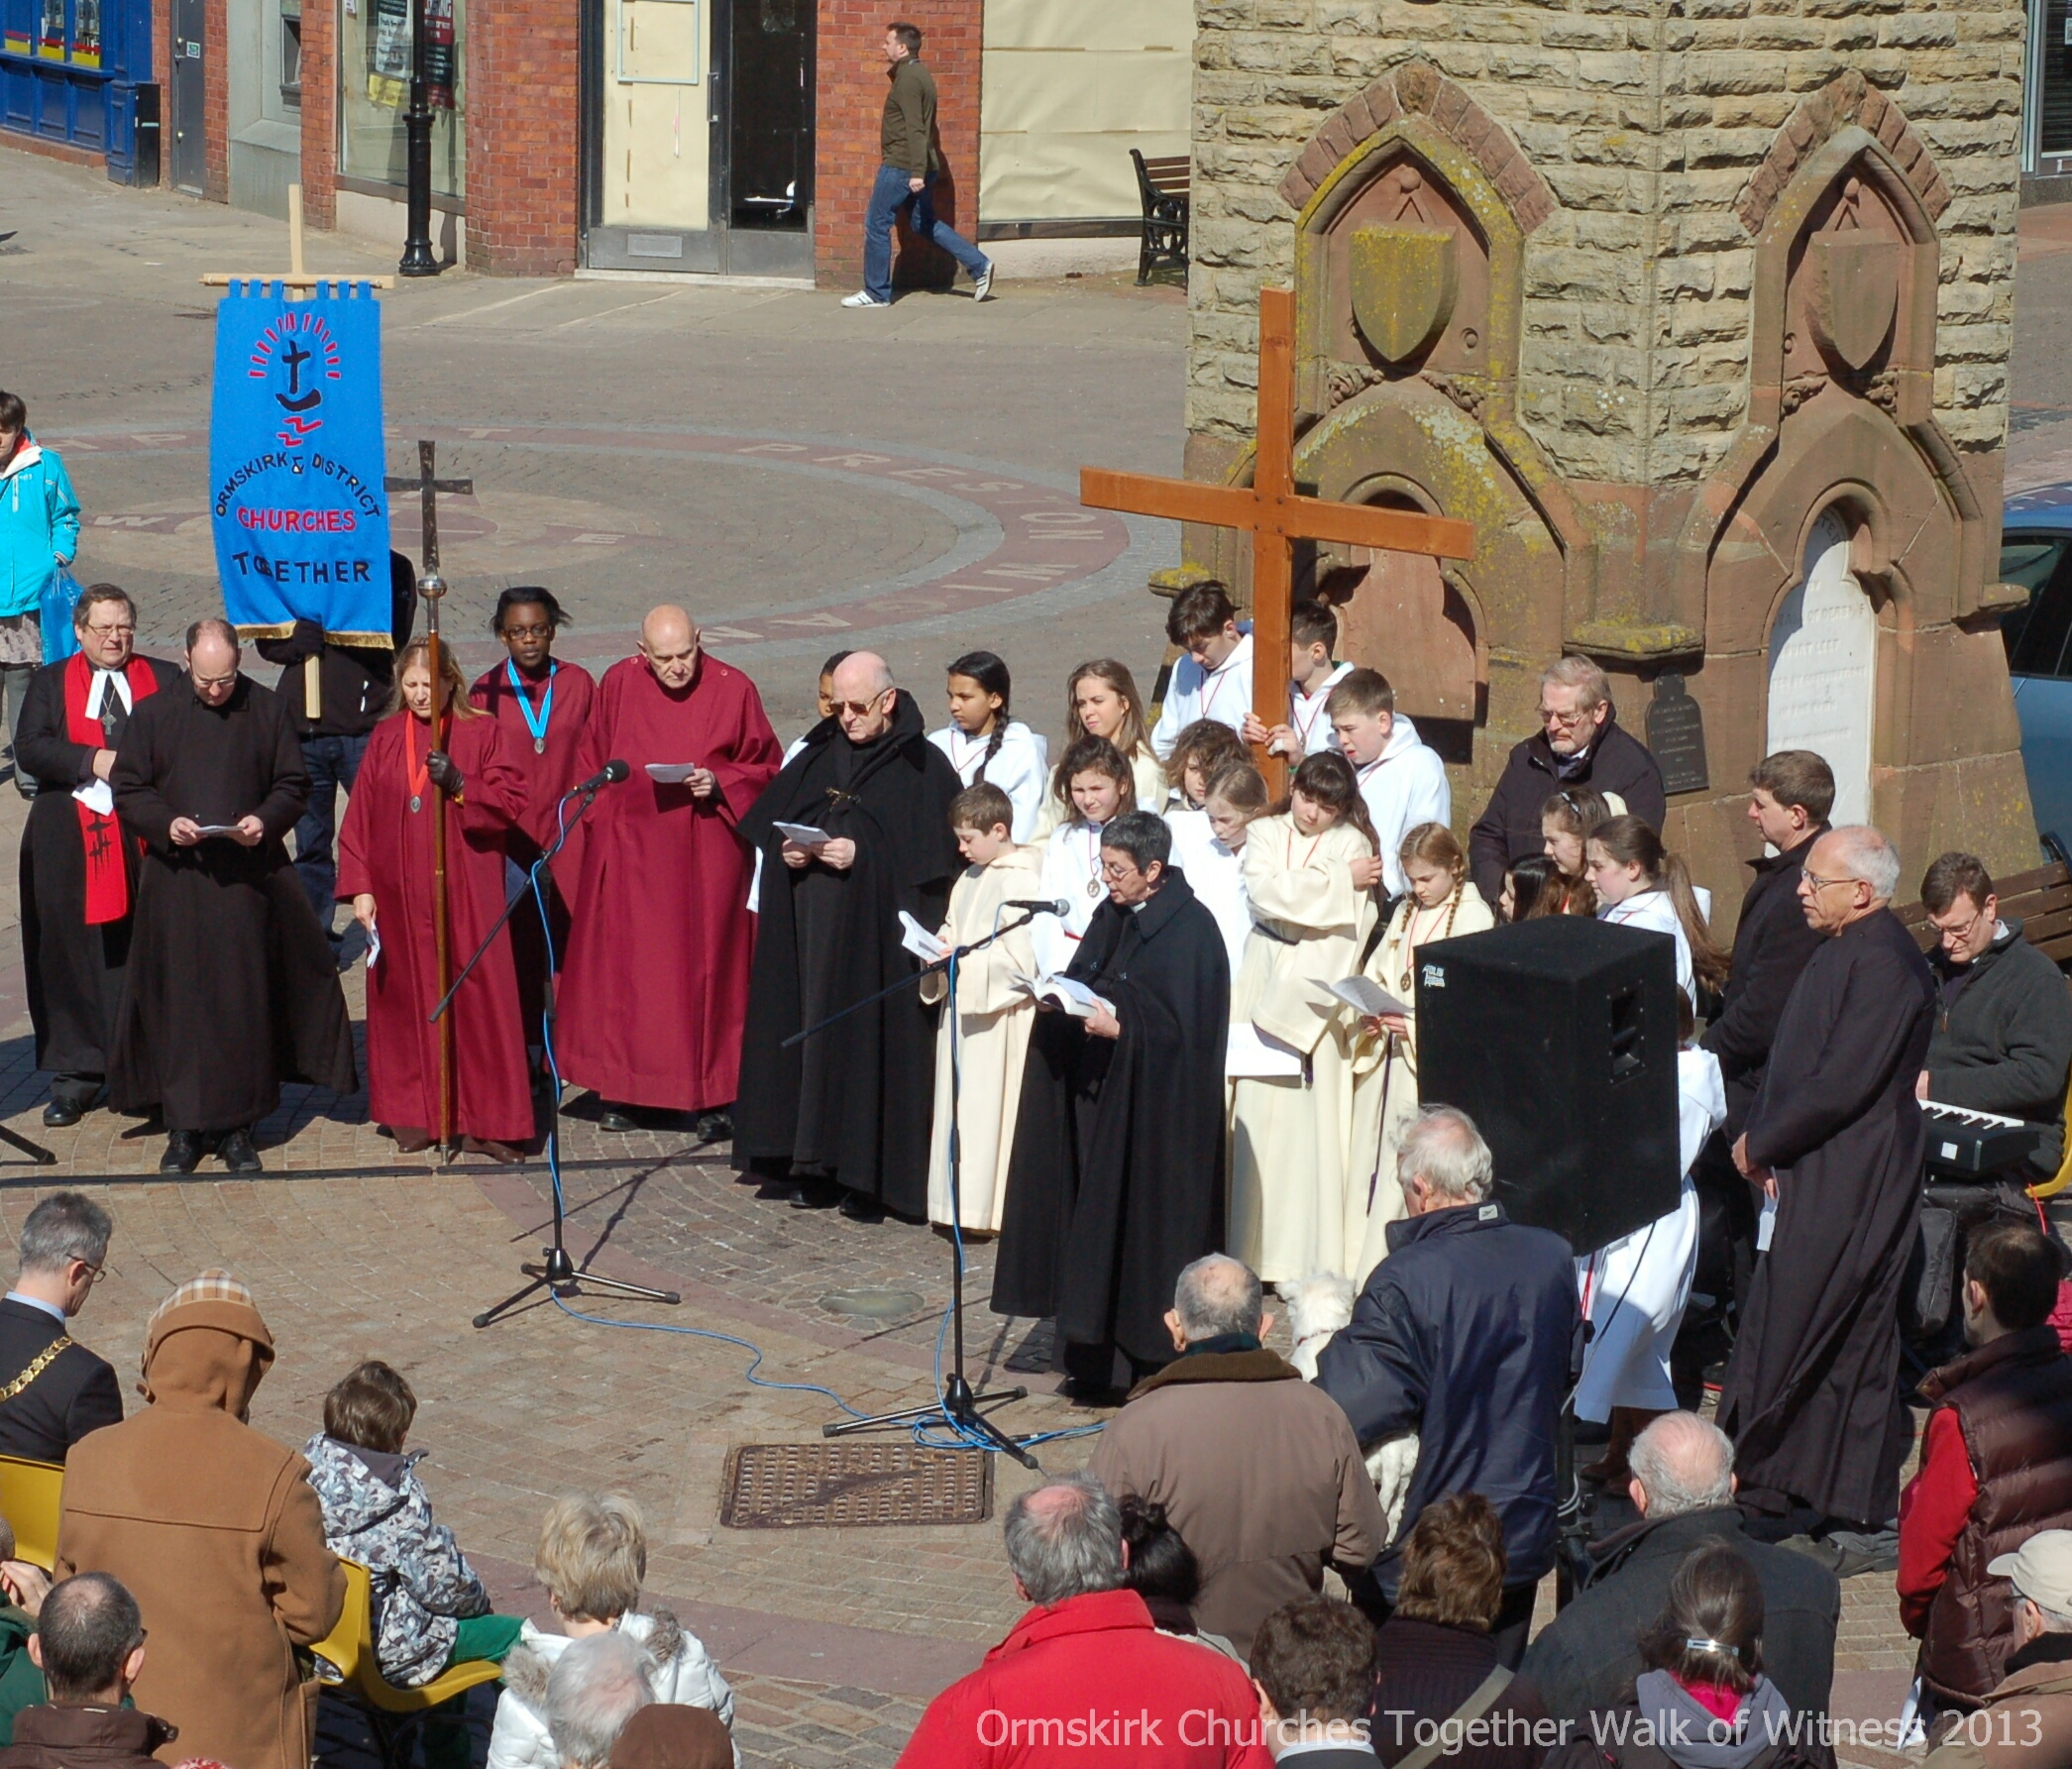 Ormskirk Good Friday 2013 Walk of Witness Service